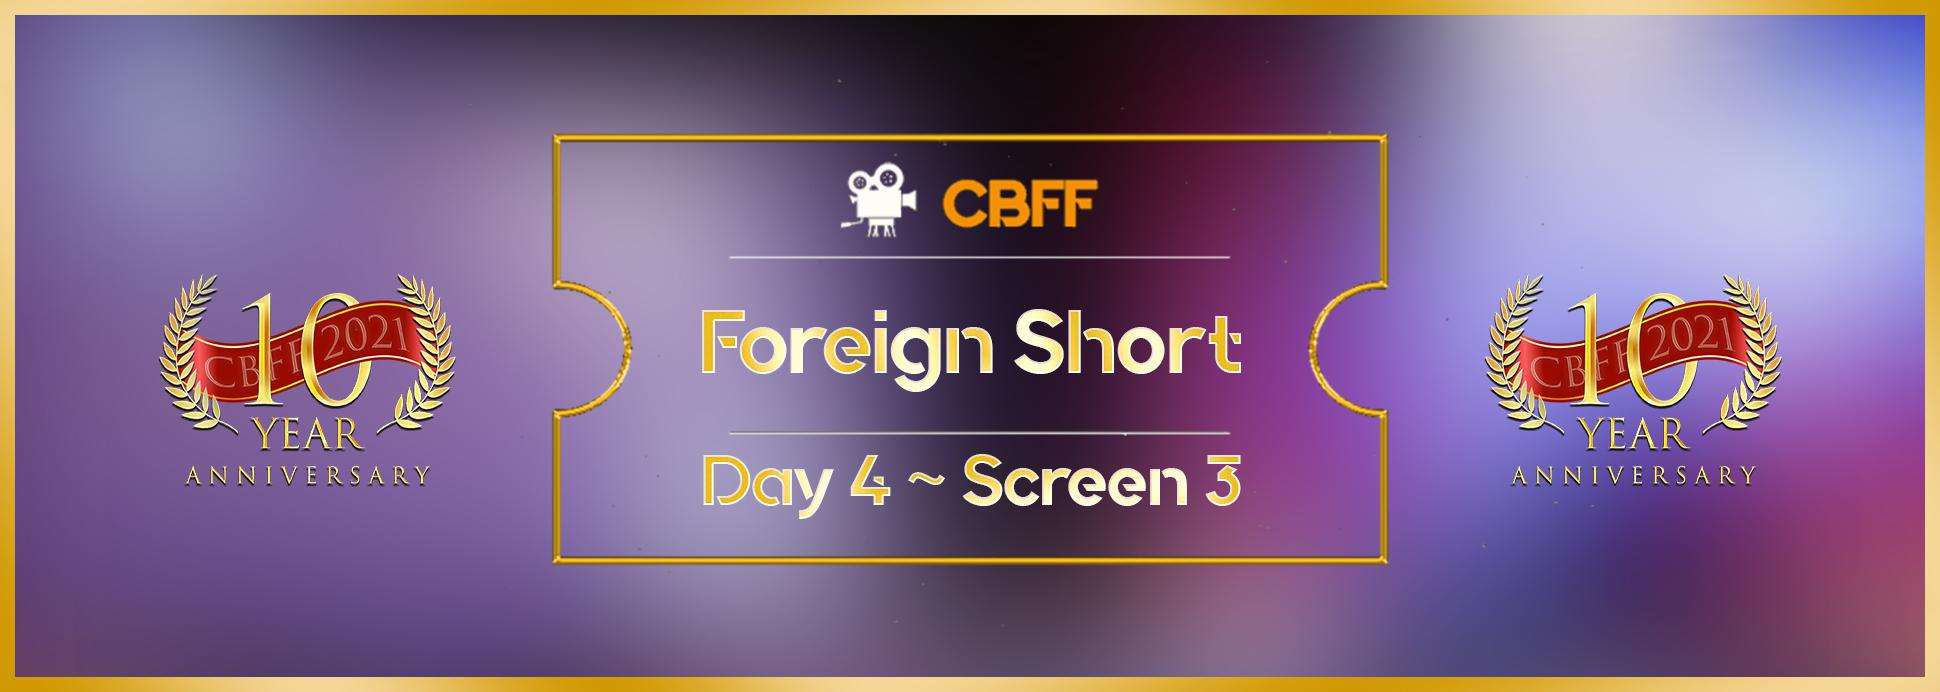 Day 4, Screen 3: Foreign Short